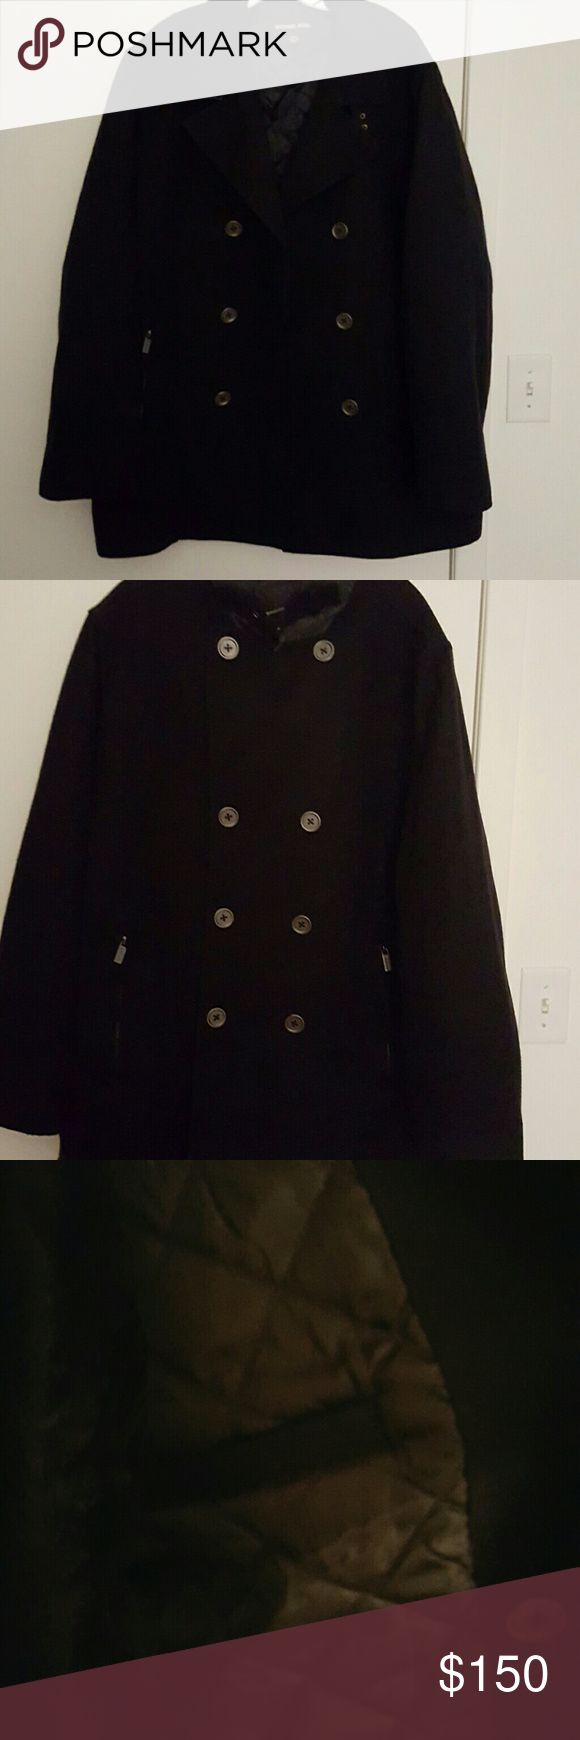 Michael Kors This is a navy blue Michael Kors pea coat. It has outside pockets which are zippered. There are inside pockets located on both sides of the jacket. The lining is quilted providing warmth. This coat is a size XL. The coat was worn but kept in good condition. Michael Kors Jackets & Coats Pea Coats